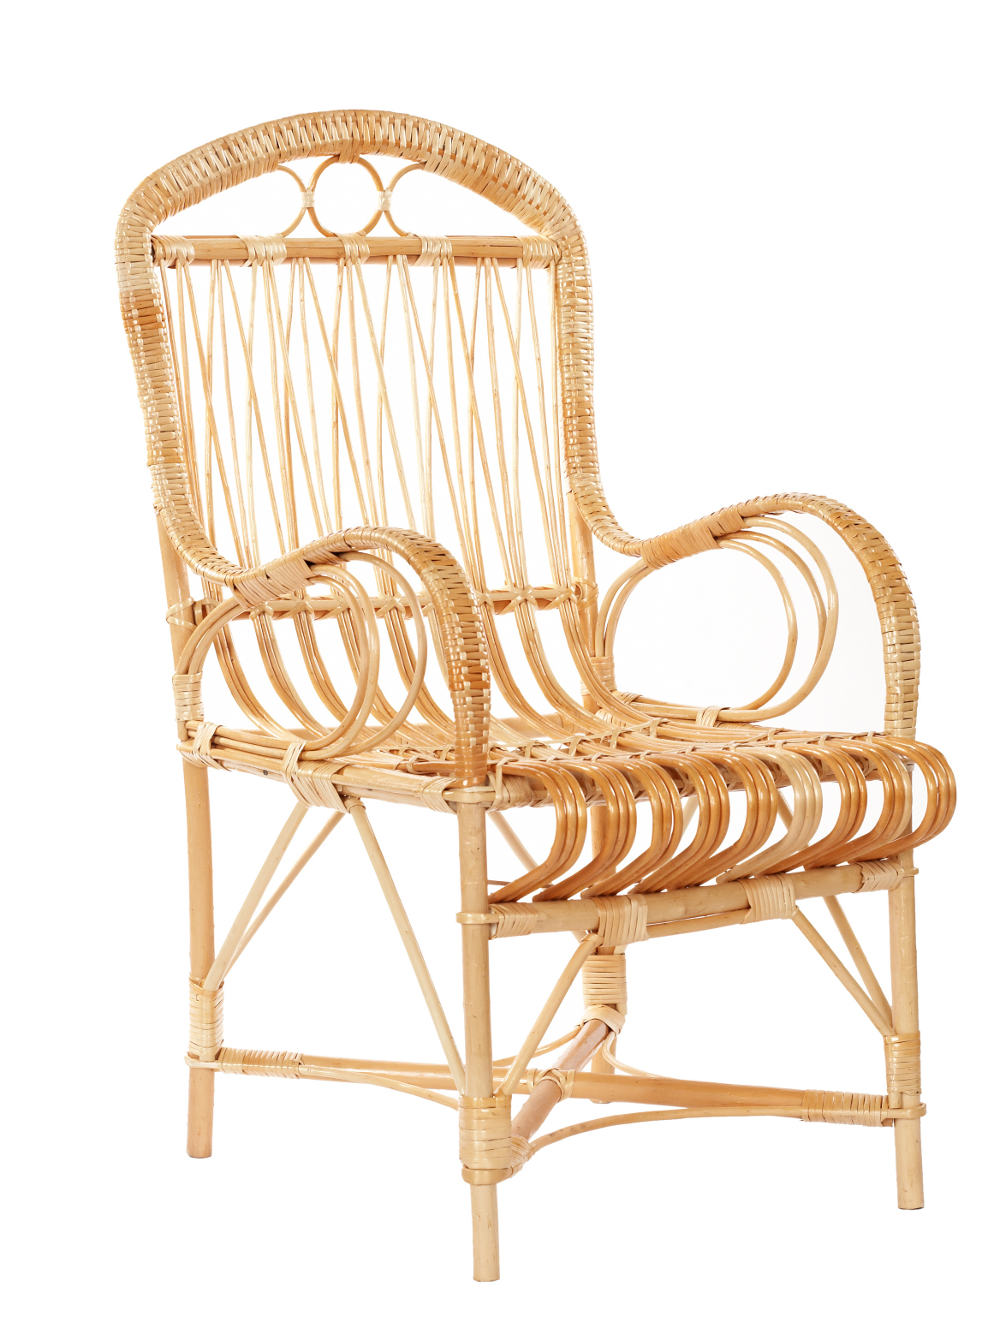 How To Repair Wicker Patio Furniture.How To Repair Wicker Furniture Learn How To Refinish Furniture